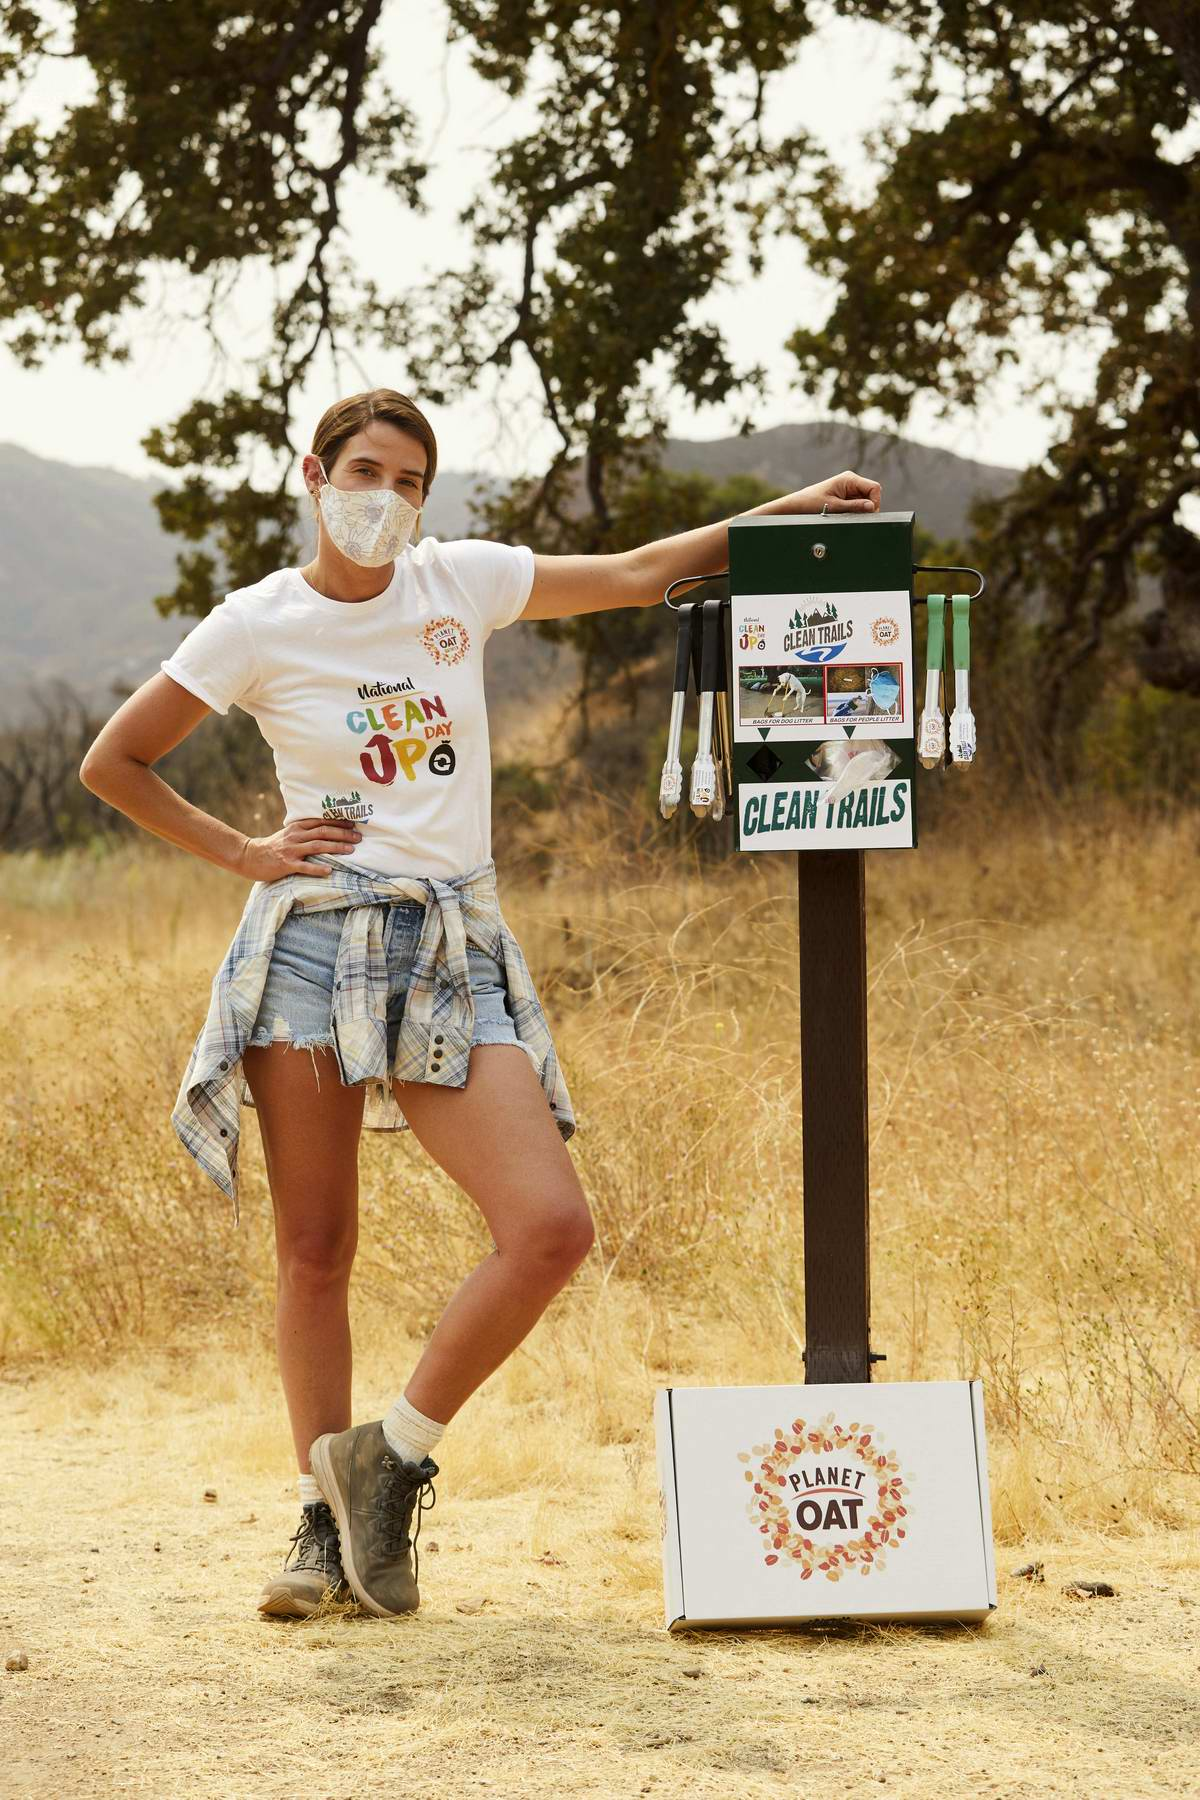 Cobie Smulders celebrates the launch of the Planet Oat Project in Calabasas, California